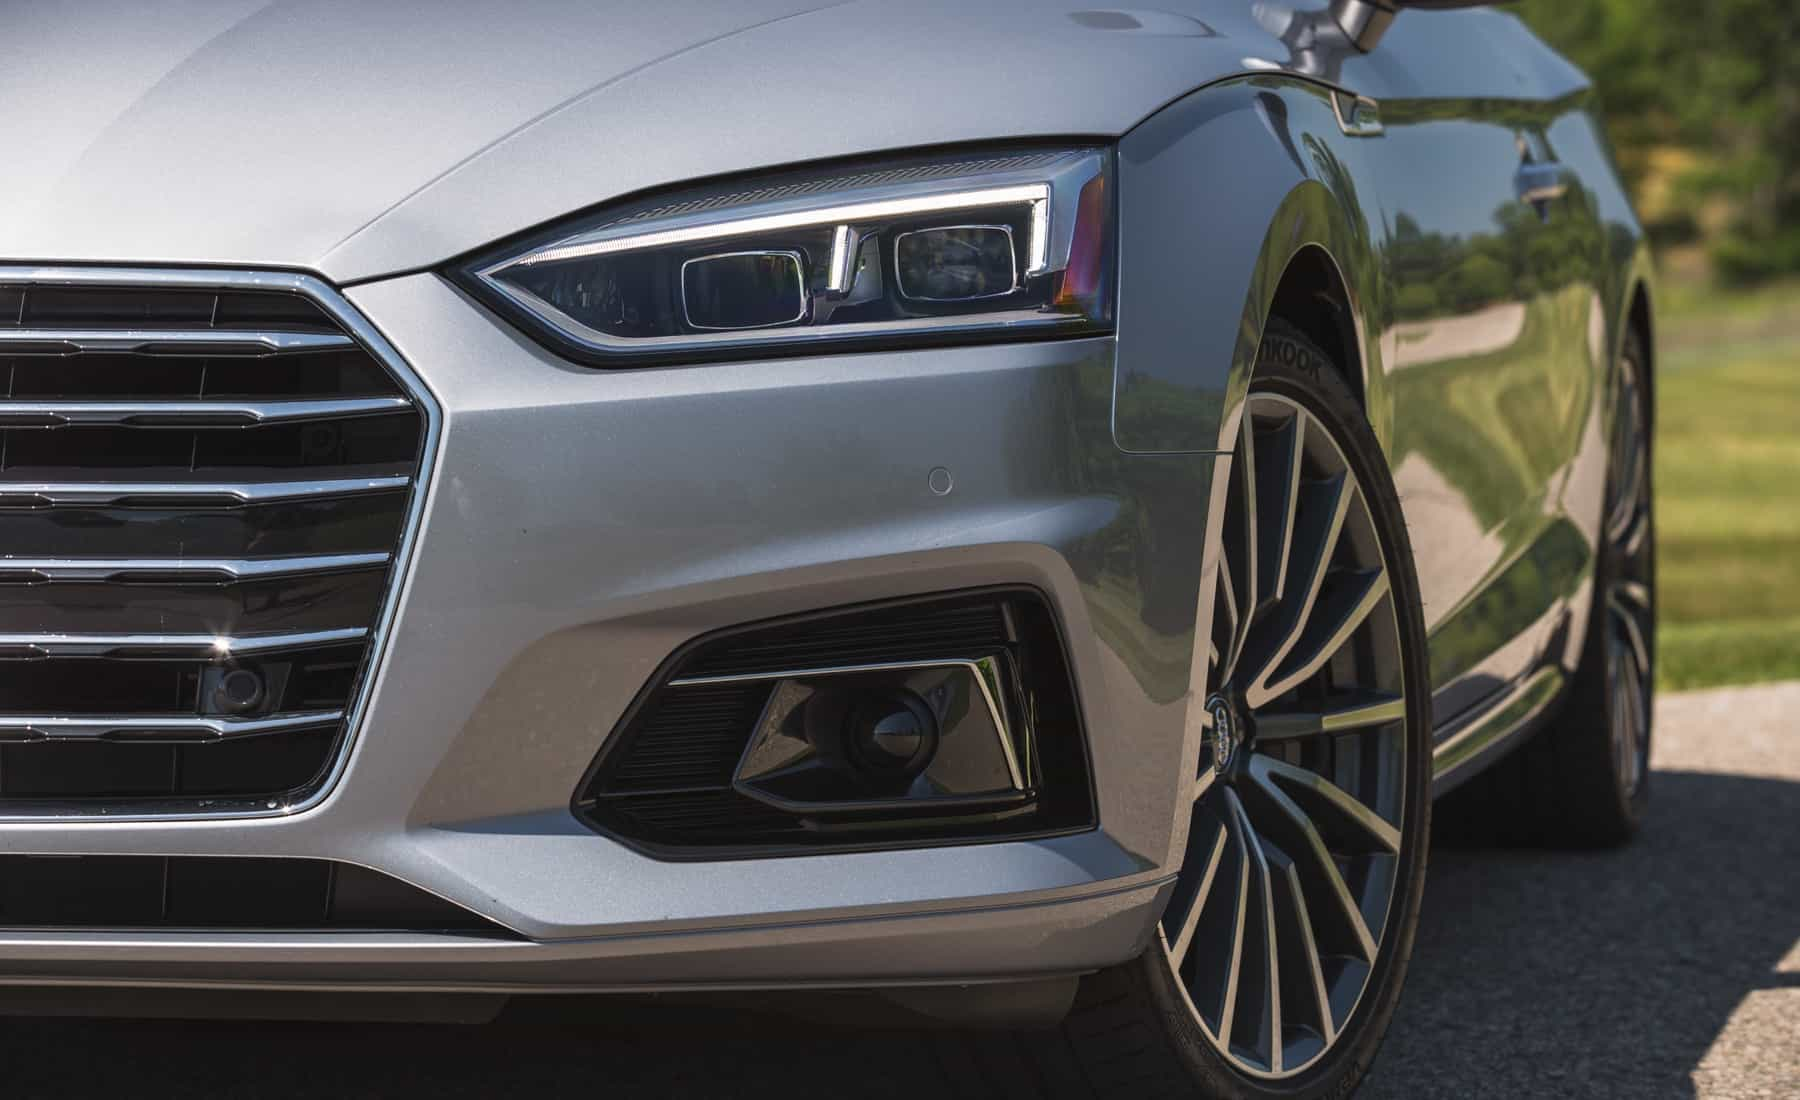 2018 Audi A5 Cabriolet Exterior View Headlight (Photo 38 of 45)